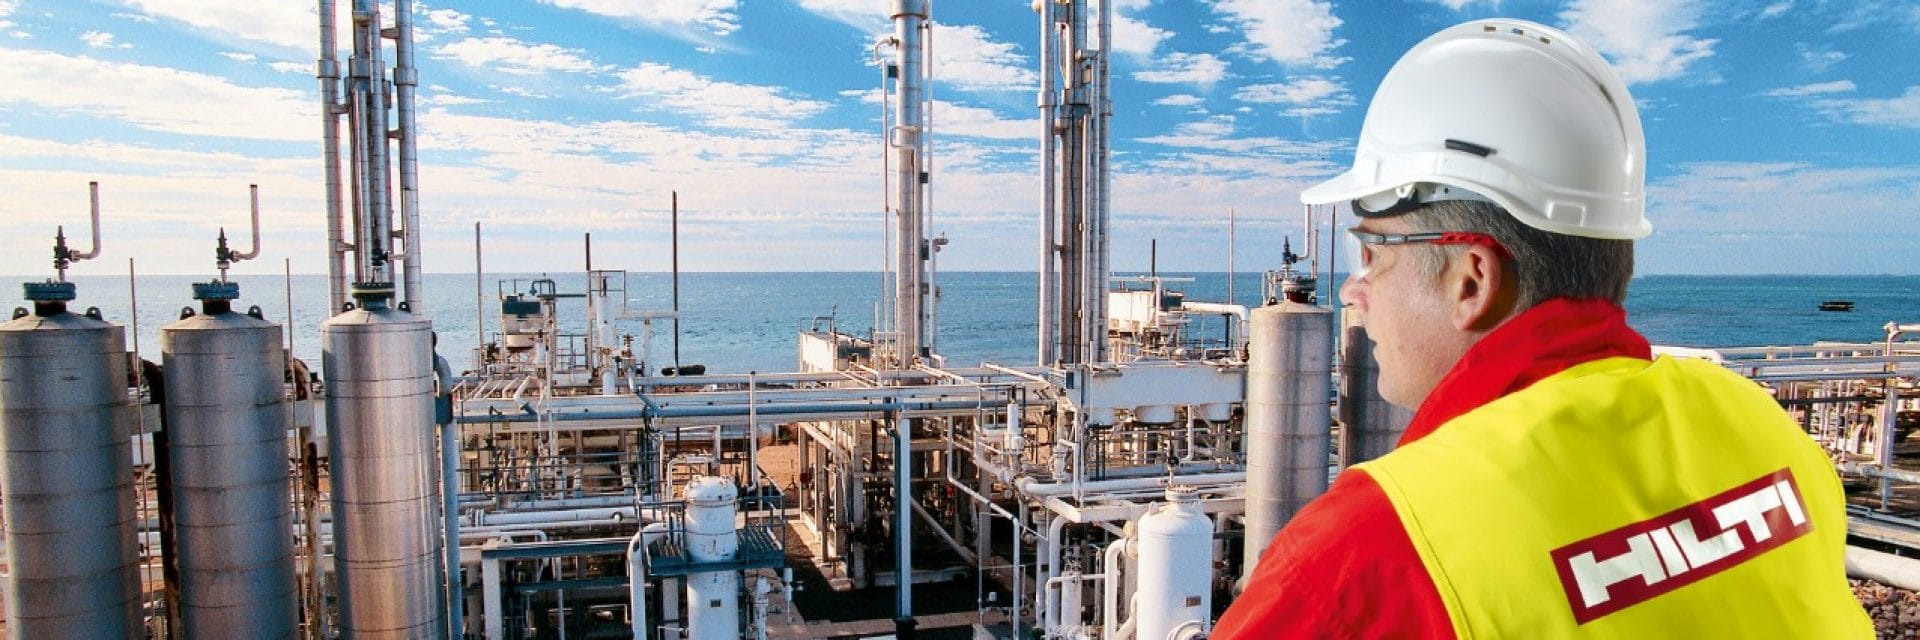 Natural gas processing plant